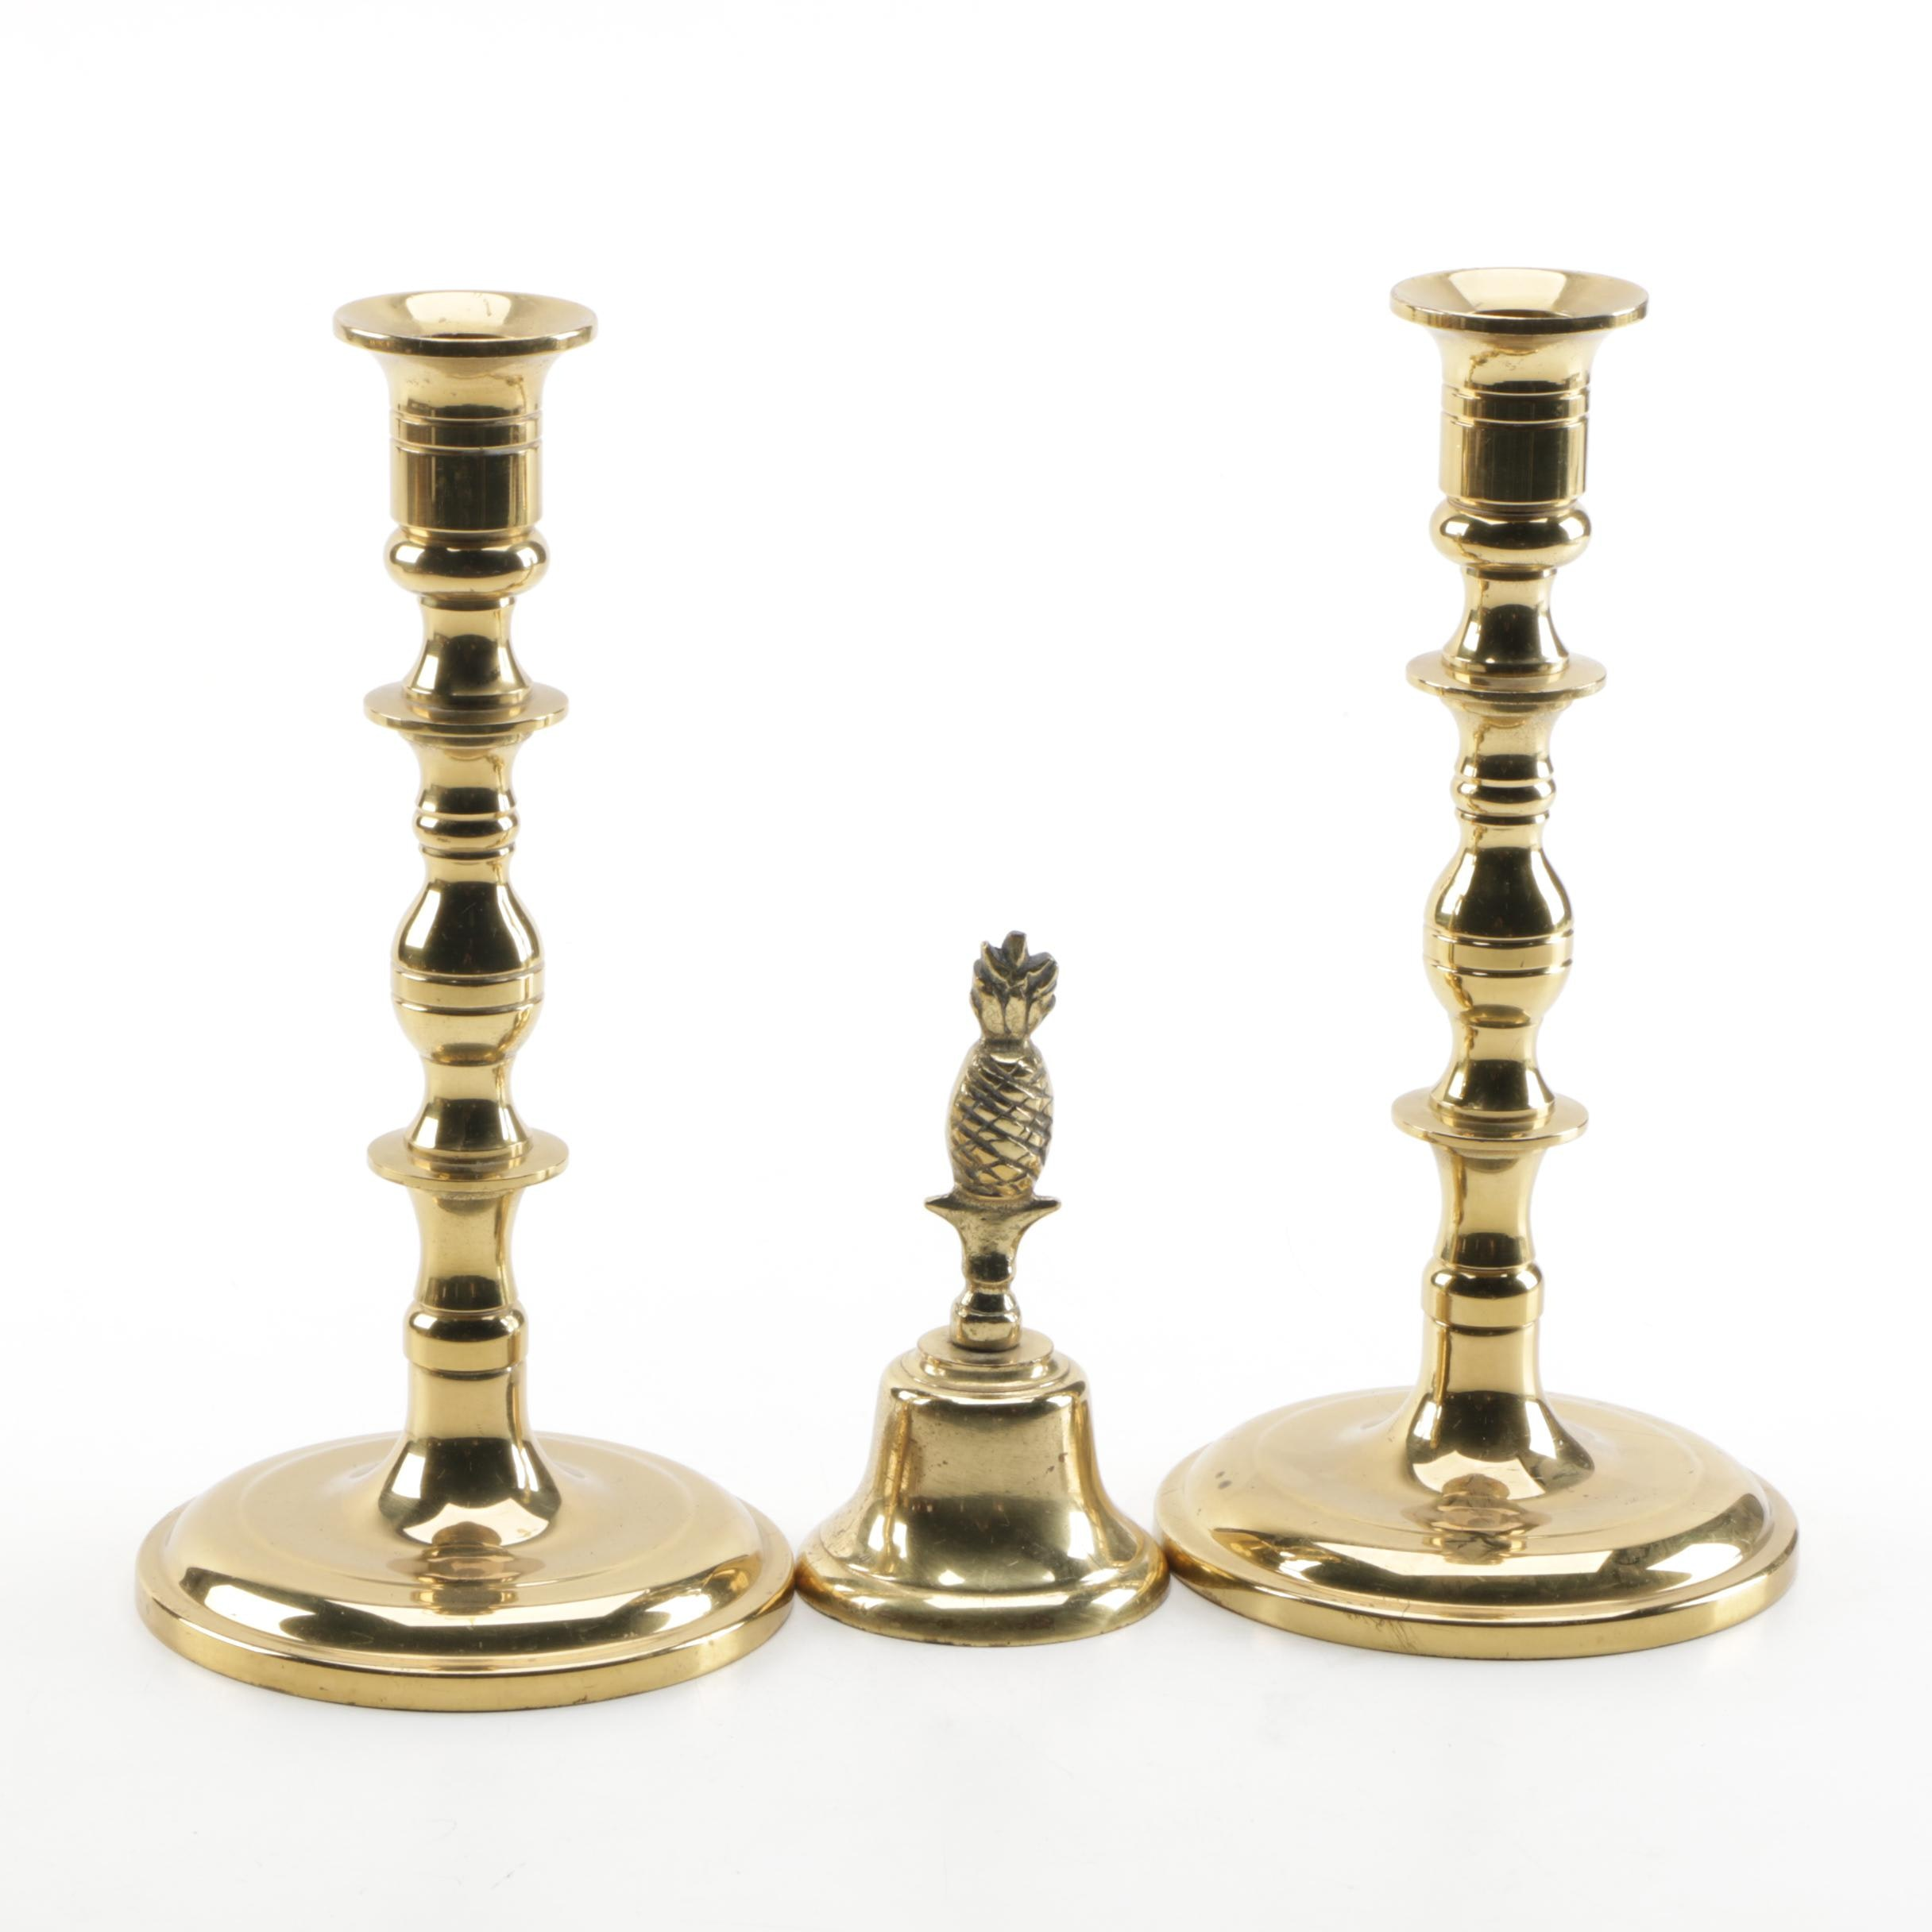 Brass Candlesticks and Pineapple Bell